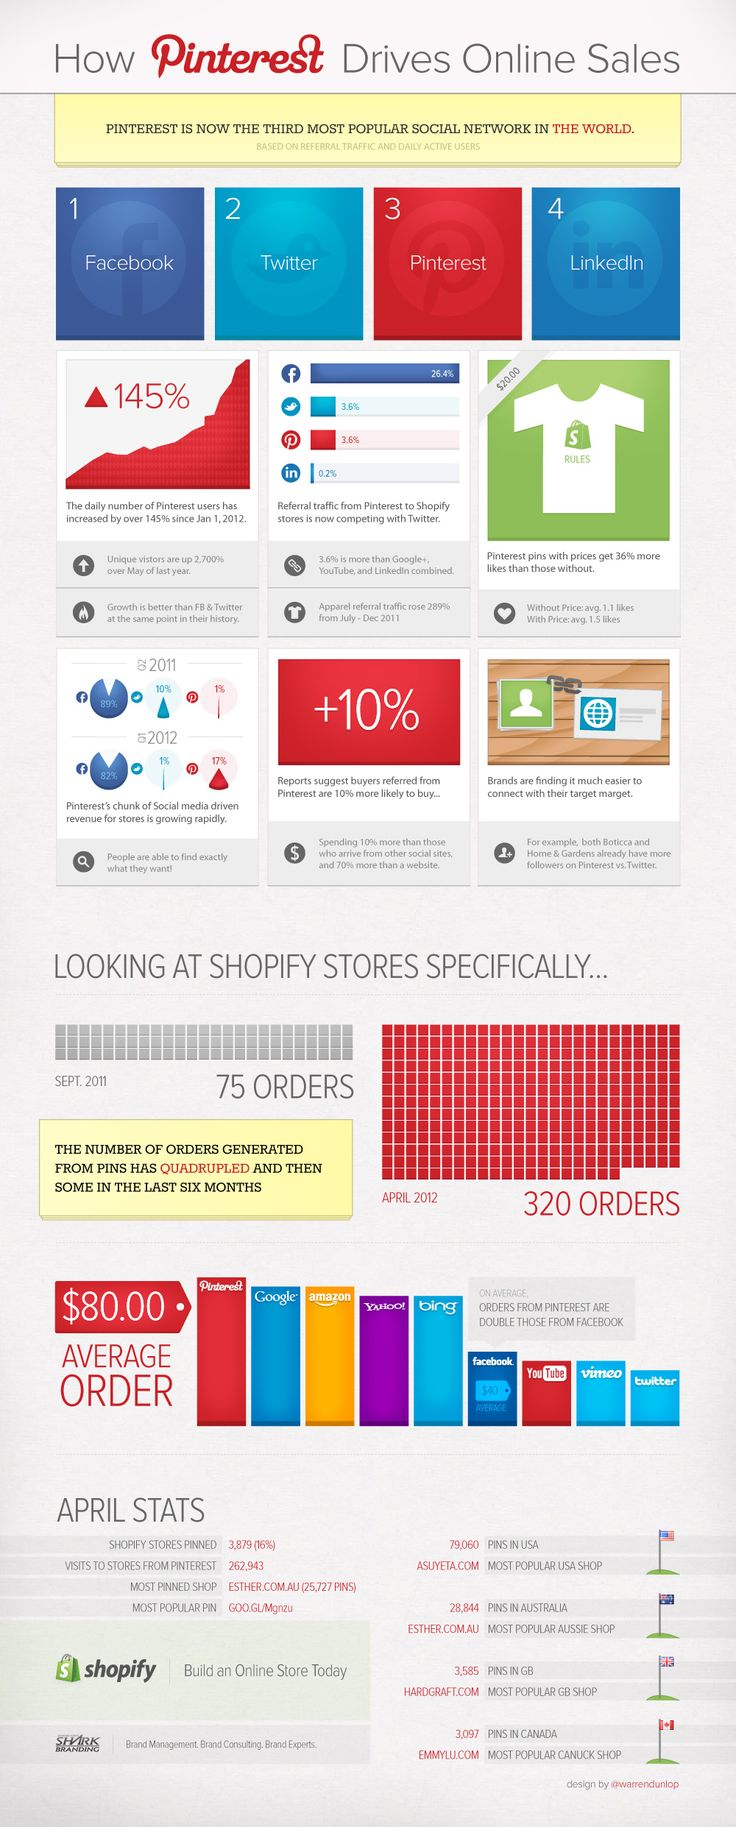 How Pinterest Drives Online Sales from Shopify / Pinterest Ecommerce Infographic